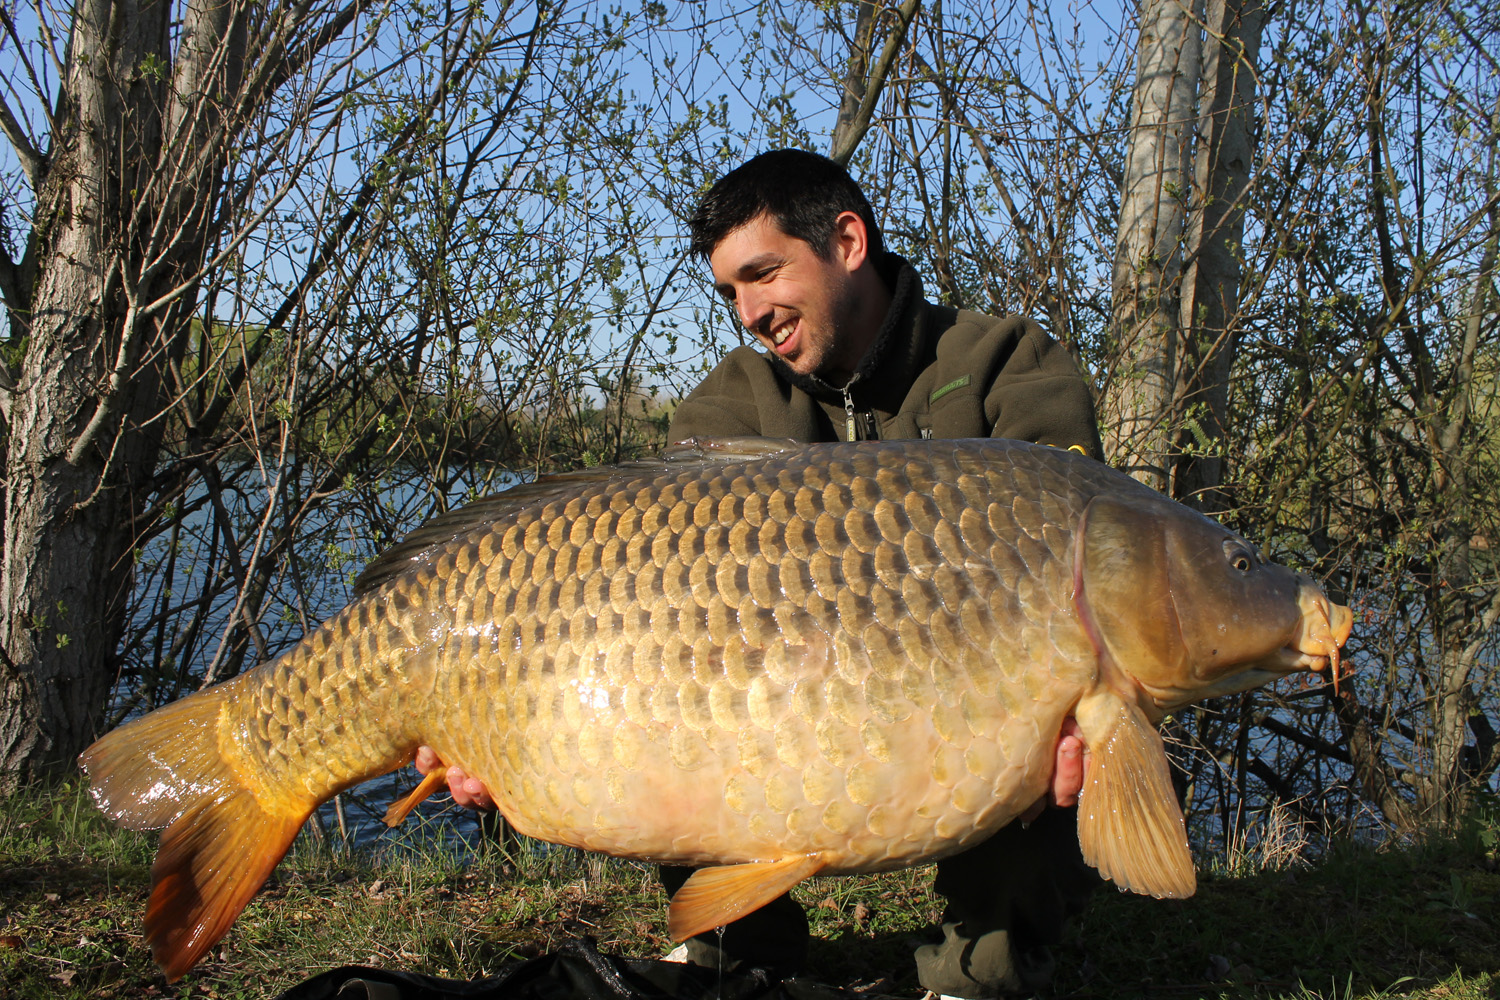 http://starbaits.com/fichiers/images/team/gallery/DUCERE_Cedric/20-DUCERE-CEDRIC.JPG